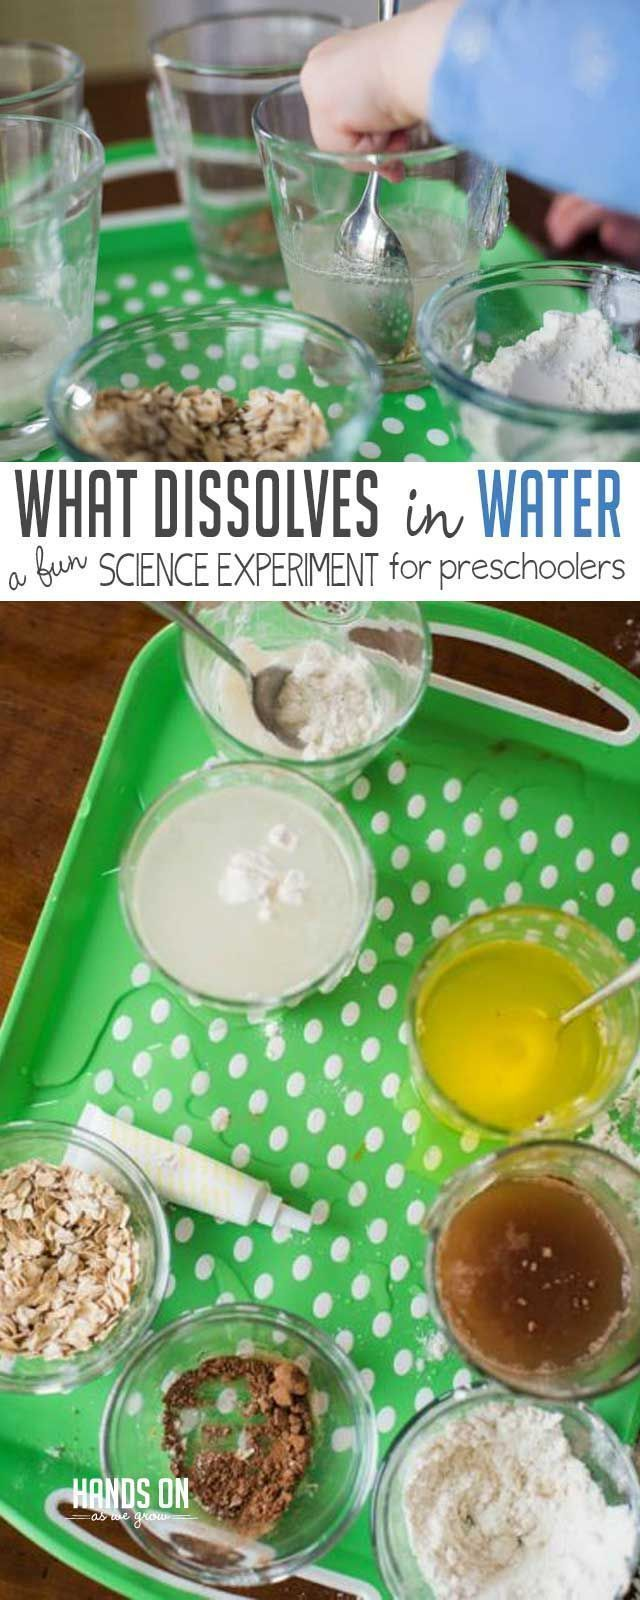 Learn What Dissolves In Water With A Preschool Science Experiment Science Experiments Kids Preschool Science Experiments For Preschoolers Preschool Science Activities